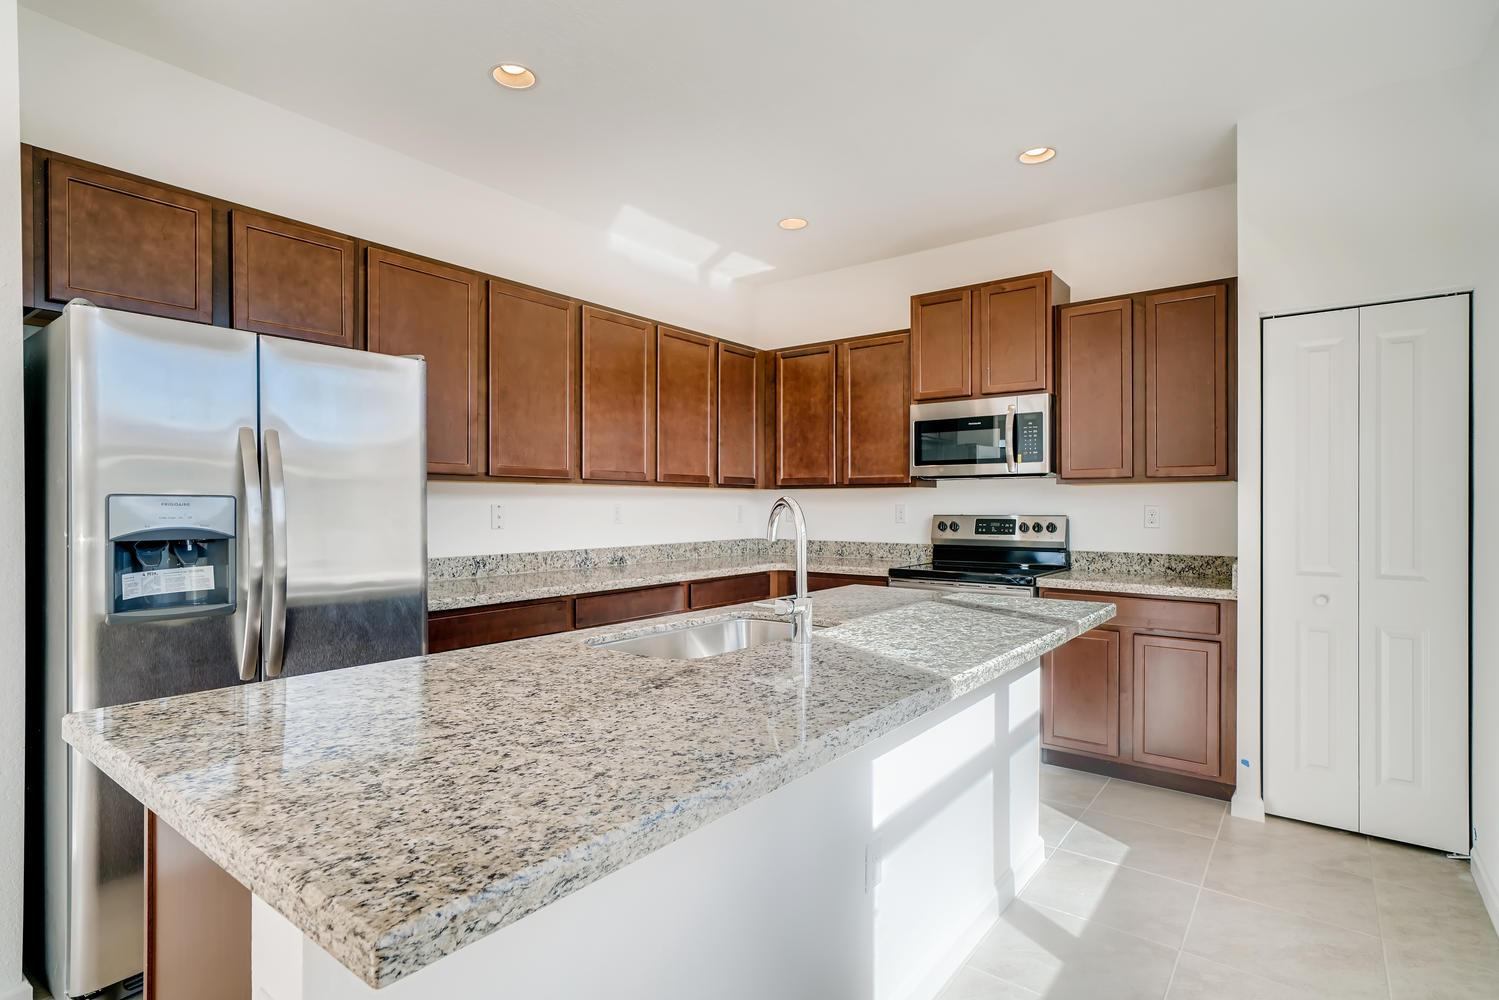 Kitchen featured in the Coral II By D.R. Horton in Miami-Dade County, FL